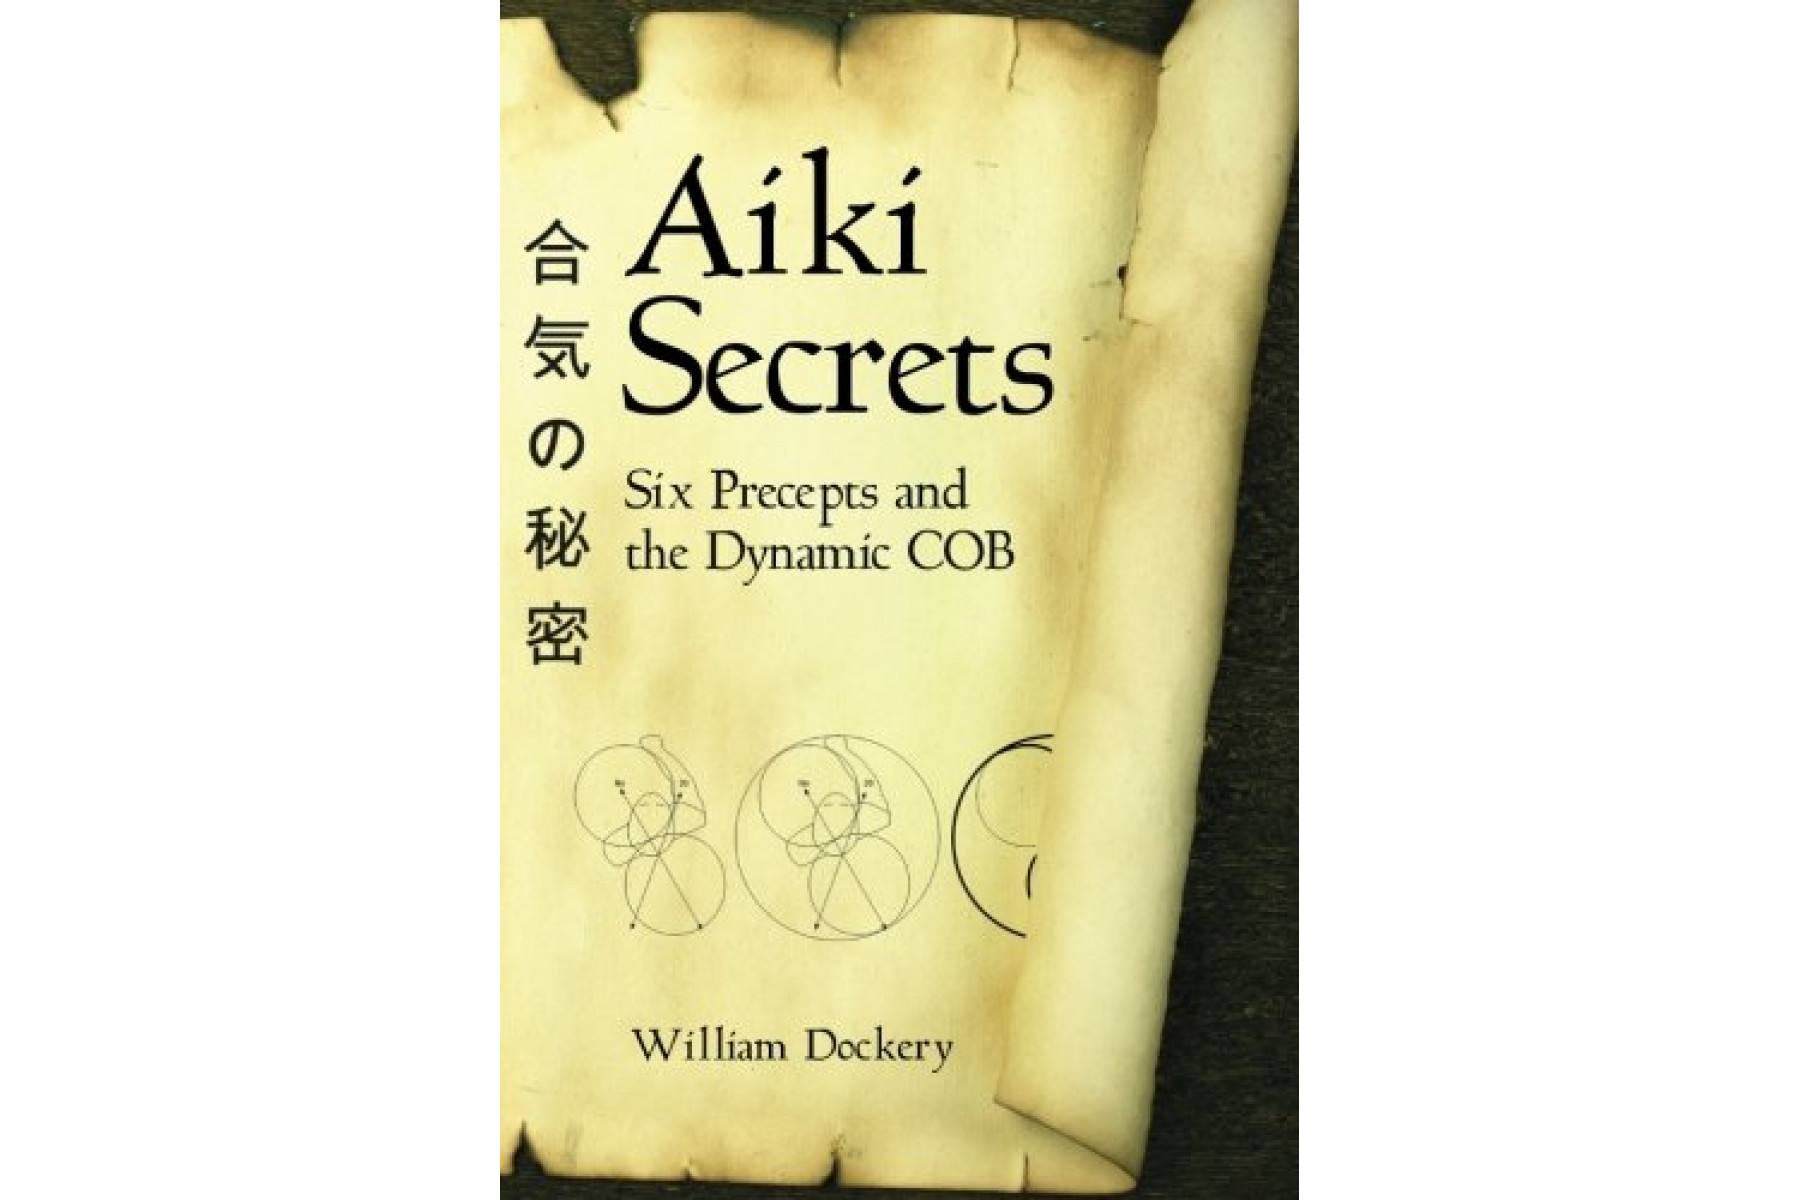 Aiki Secrets: Six Precepts and the Dynamic COB